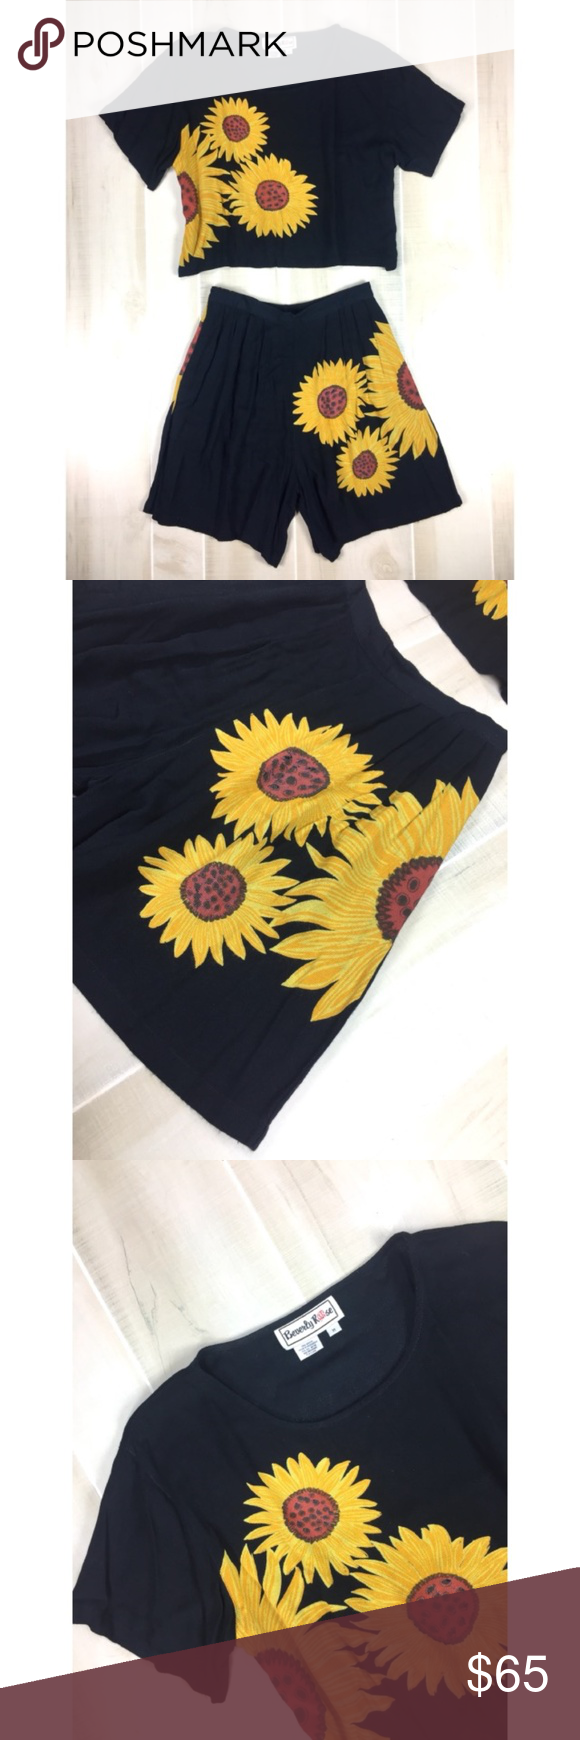 Vintage sunflower piece outfit size m topshorts high waisted